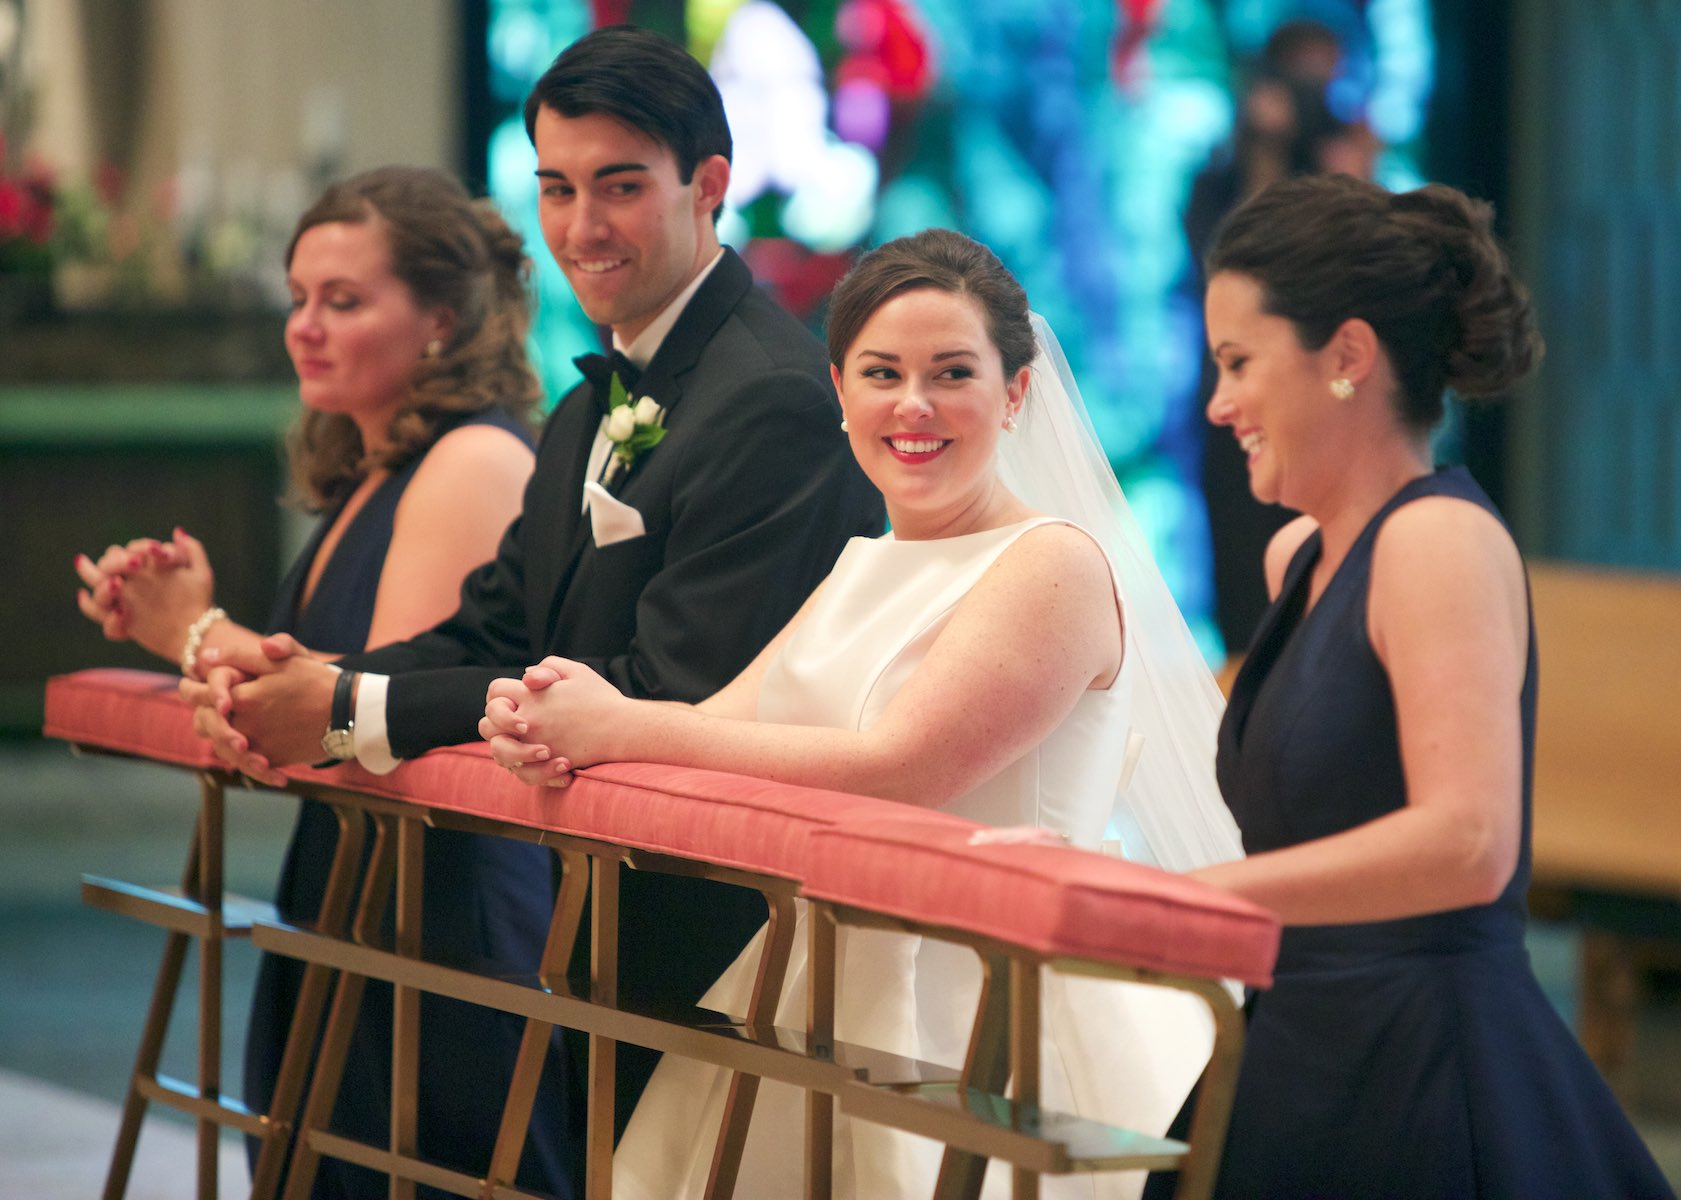 Elizabeth shares a moment with her sister, wedding ceremony at St. Rita of Cascia Shrine Chapel in Chicago. Wedding photography by Steve & Tiffany Warmowski